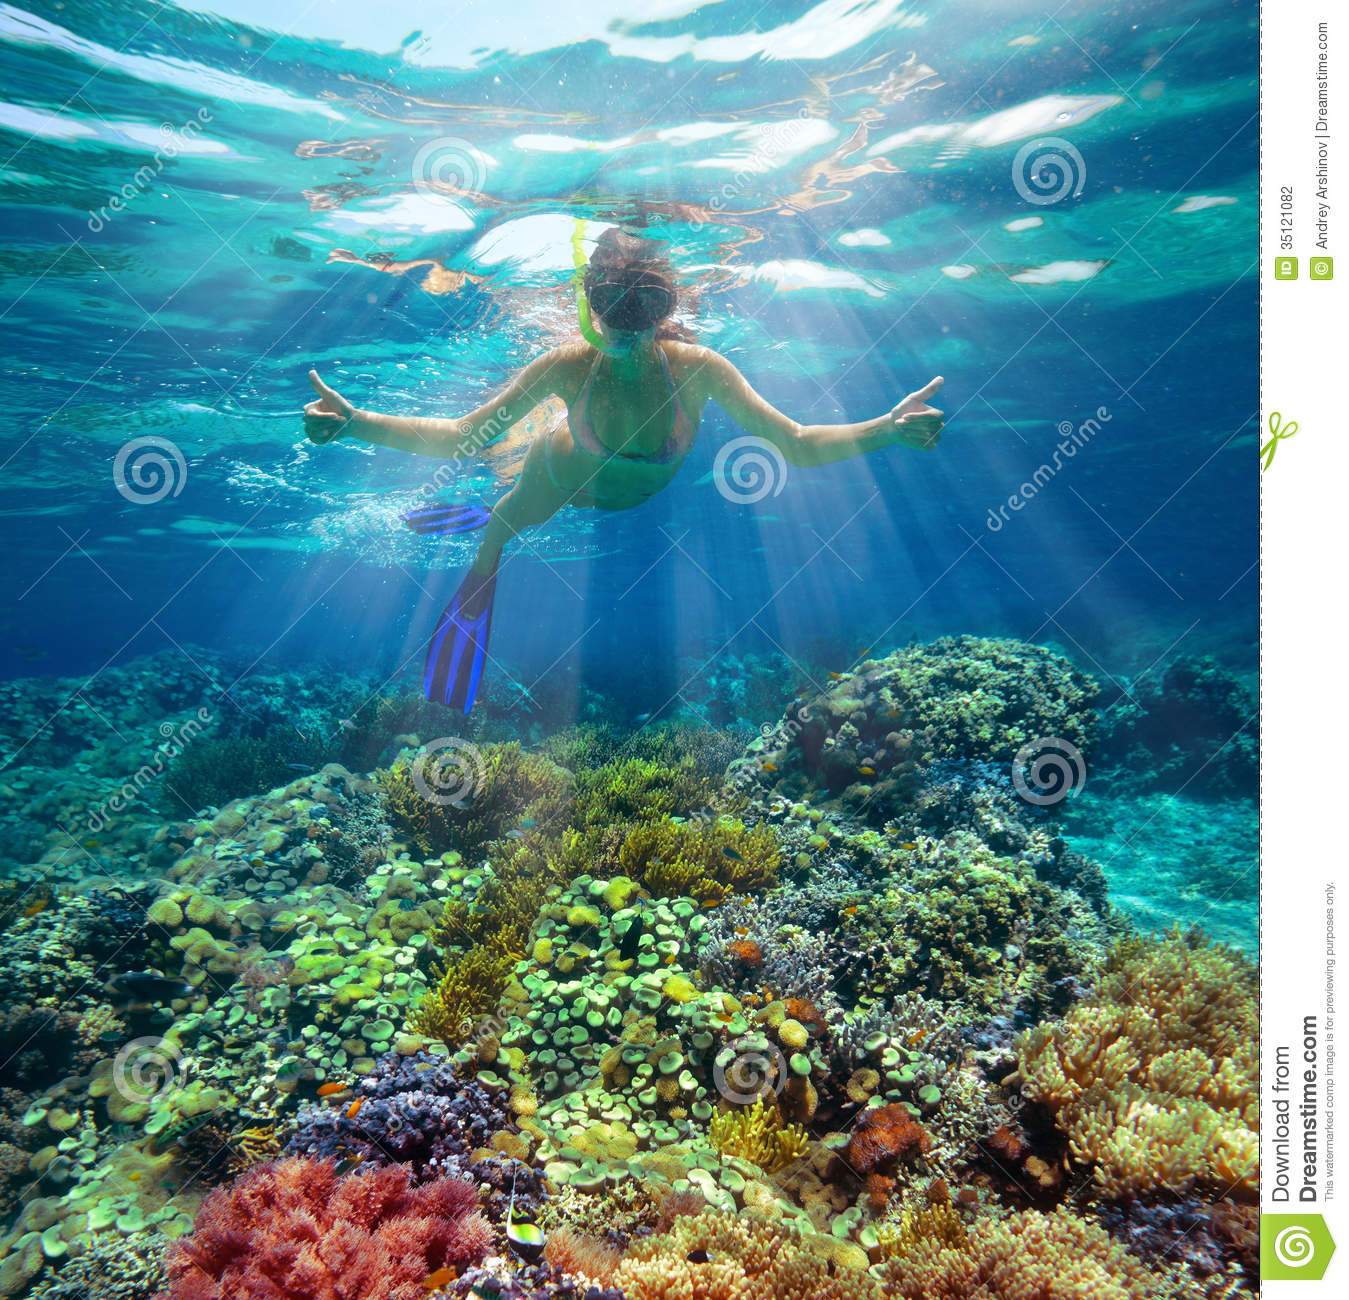 Underwater Shot Of A Woman Snorkeling In The Sun Stock